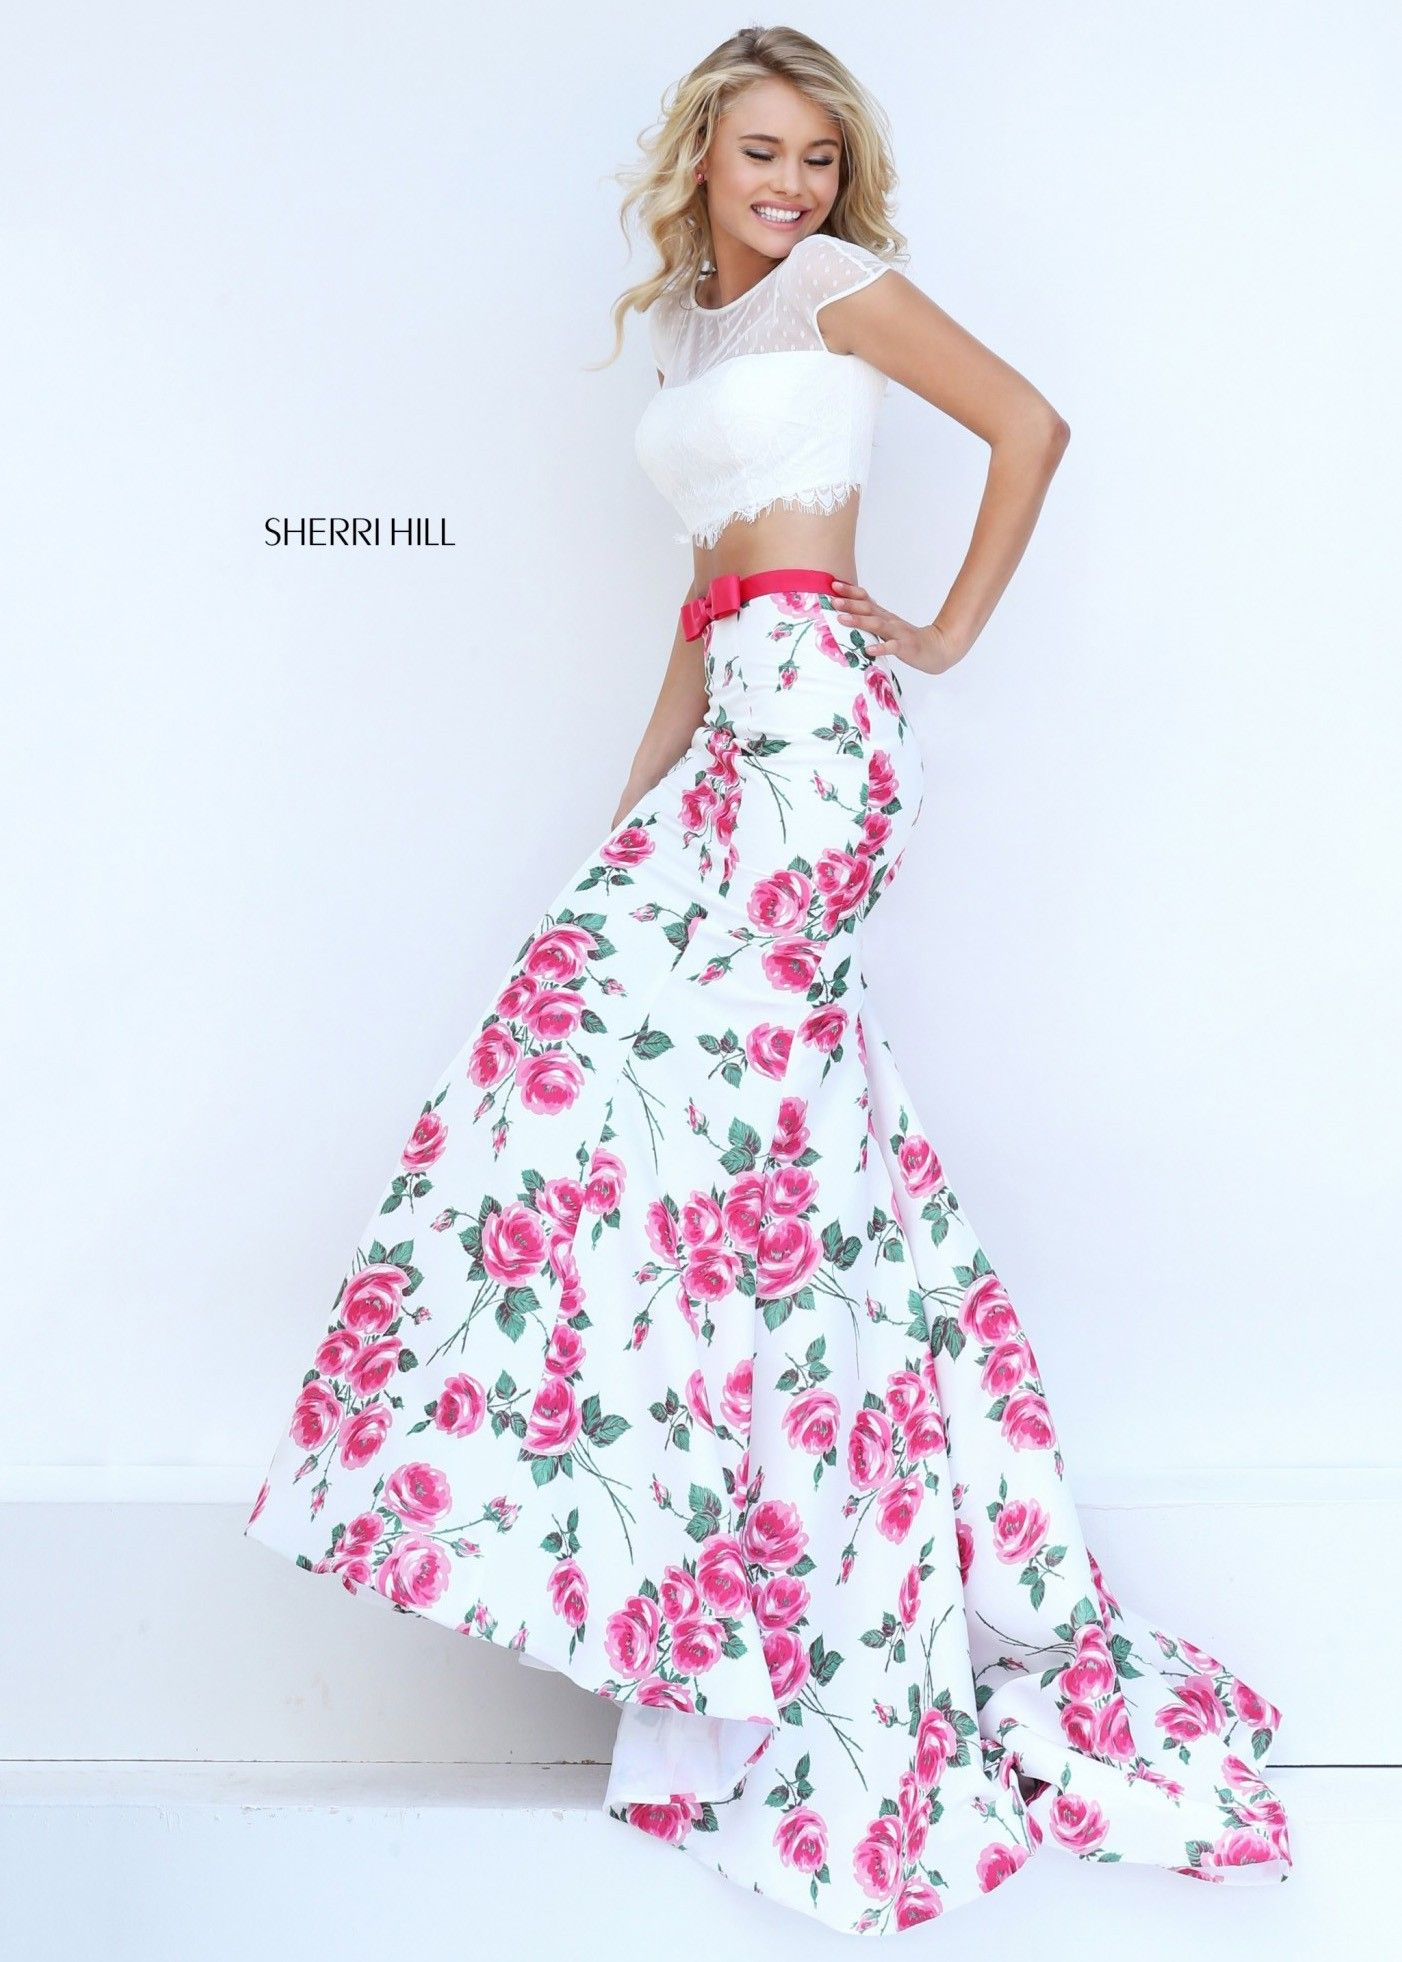 e039aa34b178 Sherri Hill 50421 Floral Printed Two Piece Mermaid Dress in 2019 ...